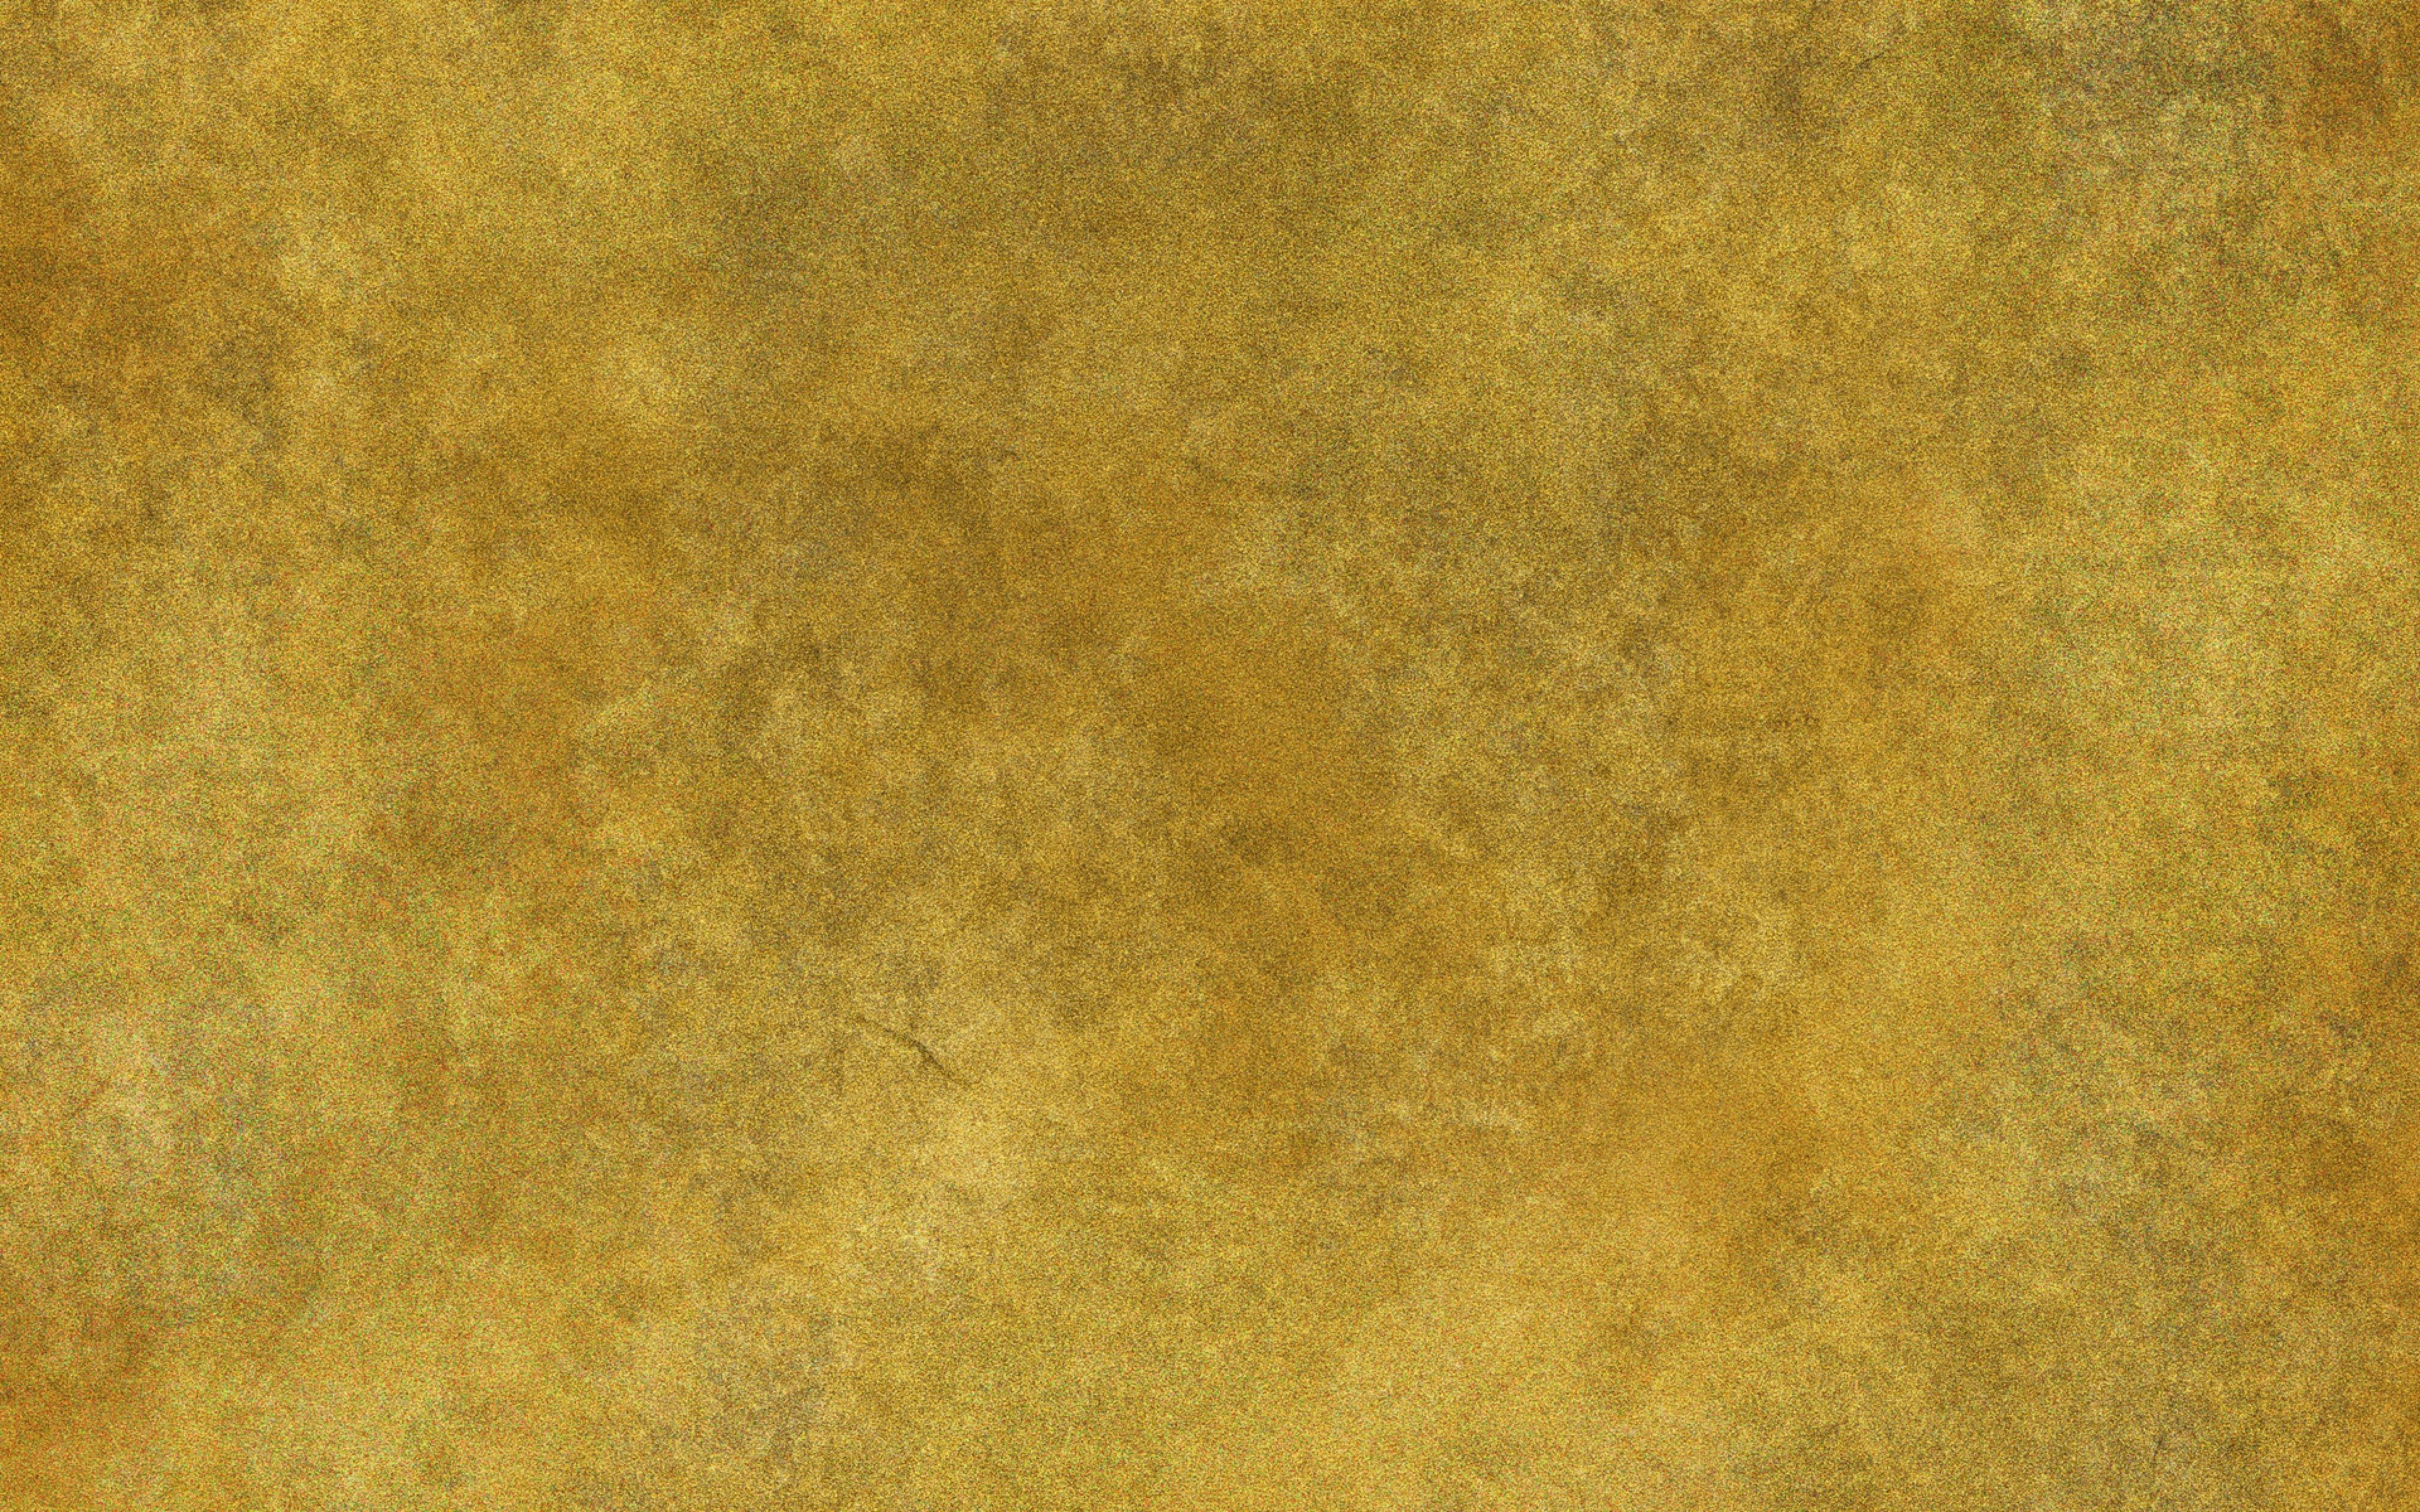 High Res Brown Grunge Wallpaper Background